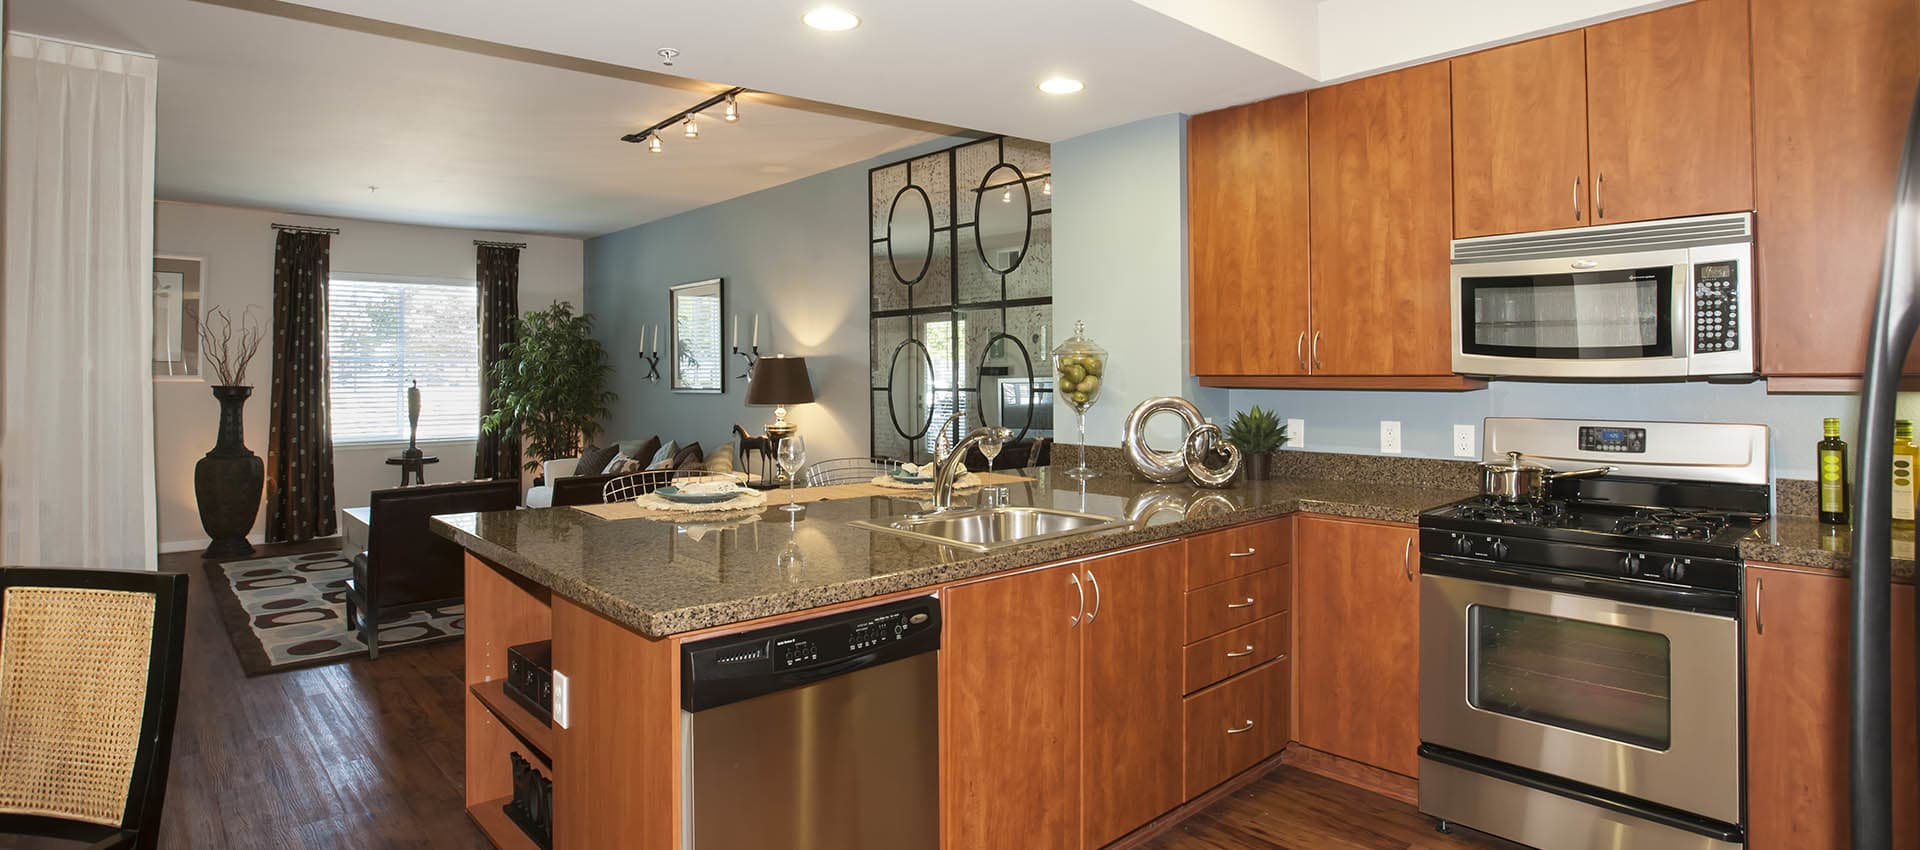 Spacious Kitchen With Stainless Appliances at Azure Apartment Homes in Petaluma, California